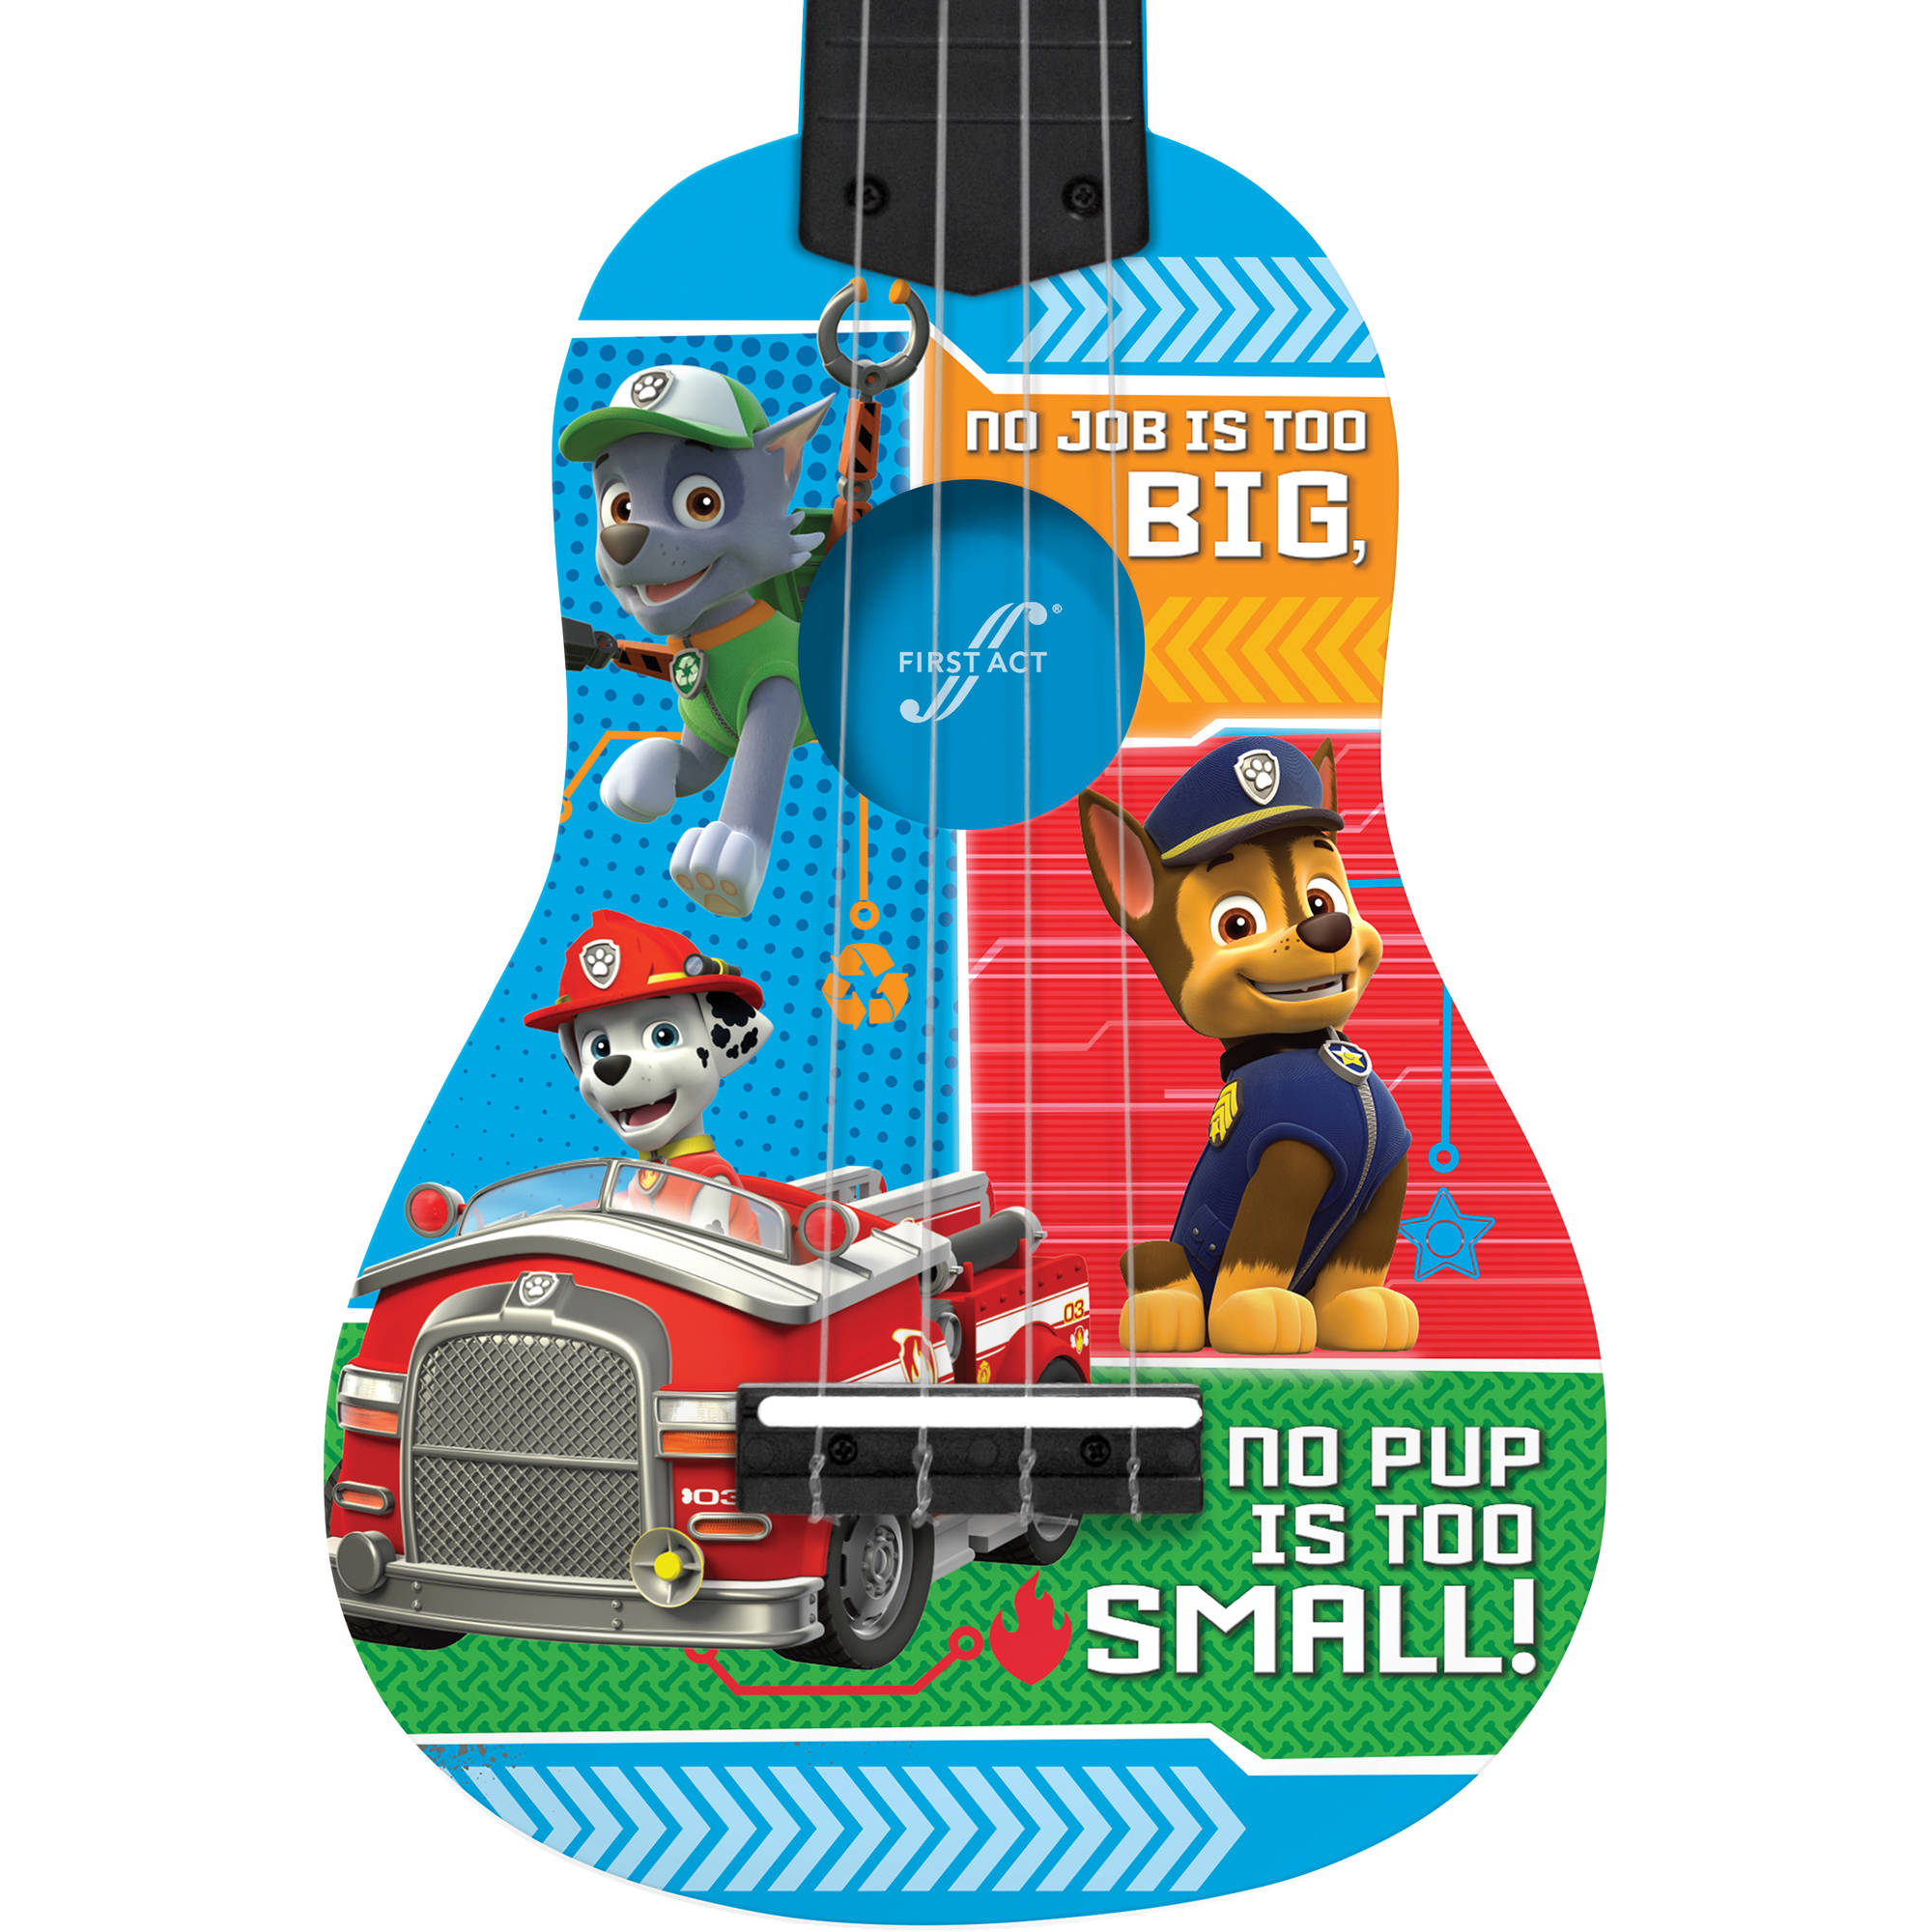 First Act Nickelodeon Paw Patrol Mini Guitar PP286 Blue Walmart